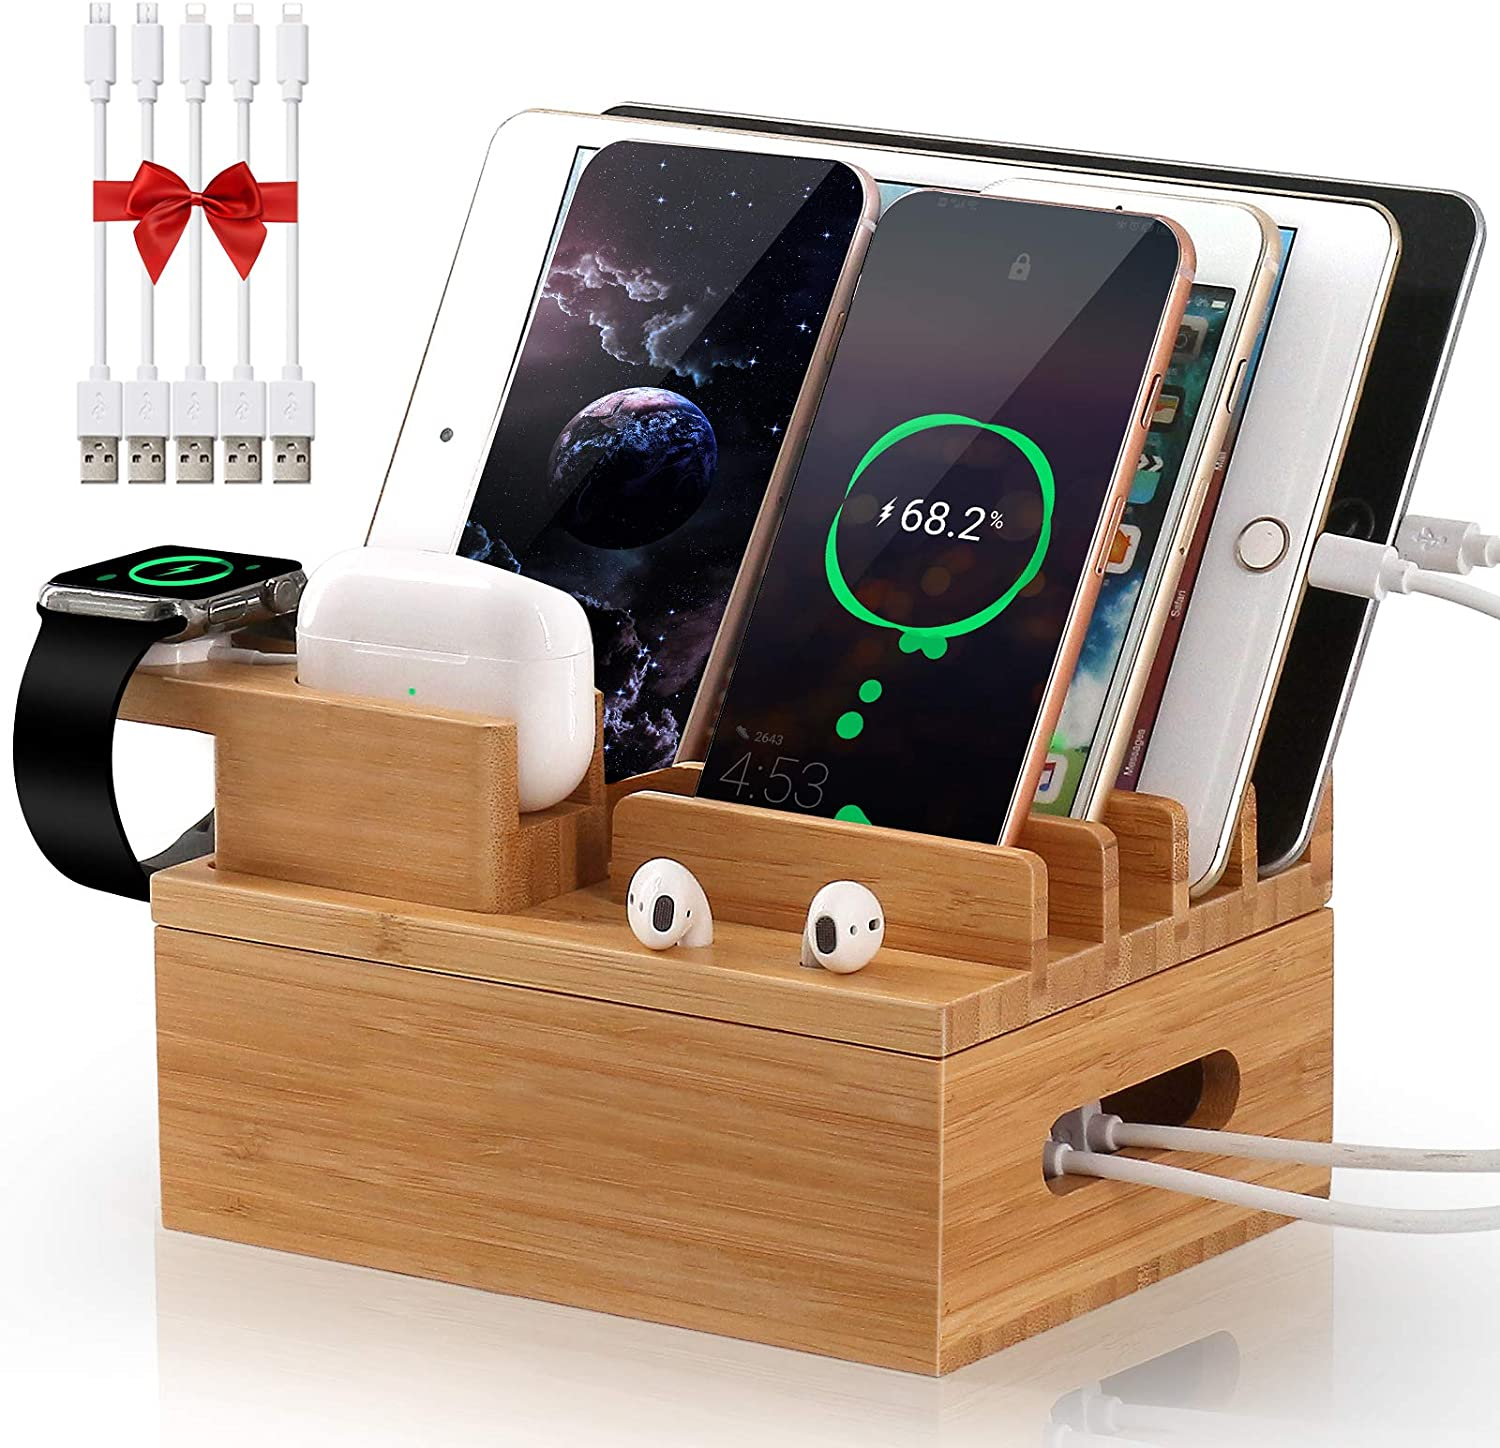 Pezin & Hulin Bamboo Charging Station for Multiple Devices, Desktop Docking Station Organizer for Apple Product, AirPods, iWatch, Cellphone, Tablet, (Included 5 Charging Cables, No Power Supply)